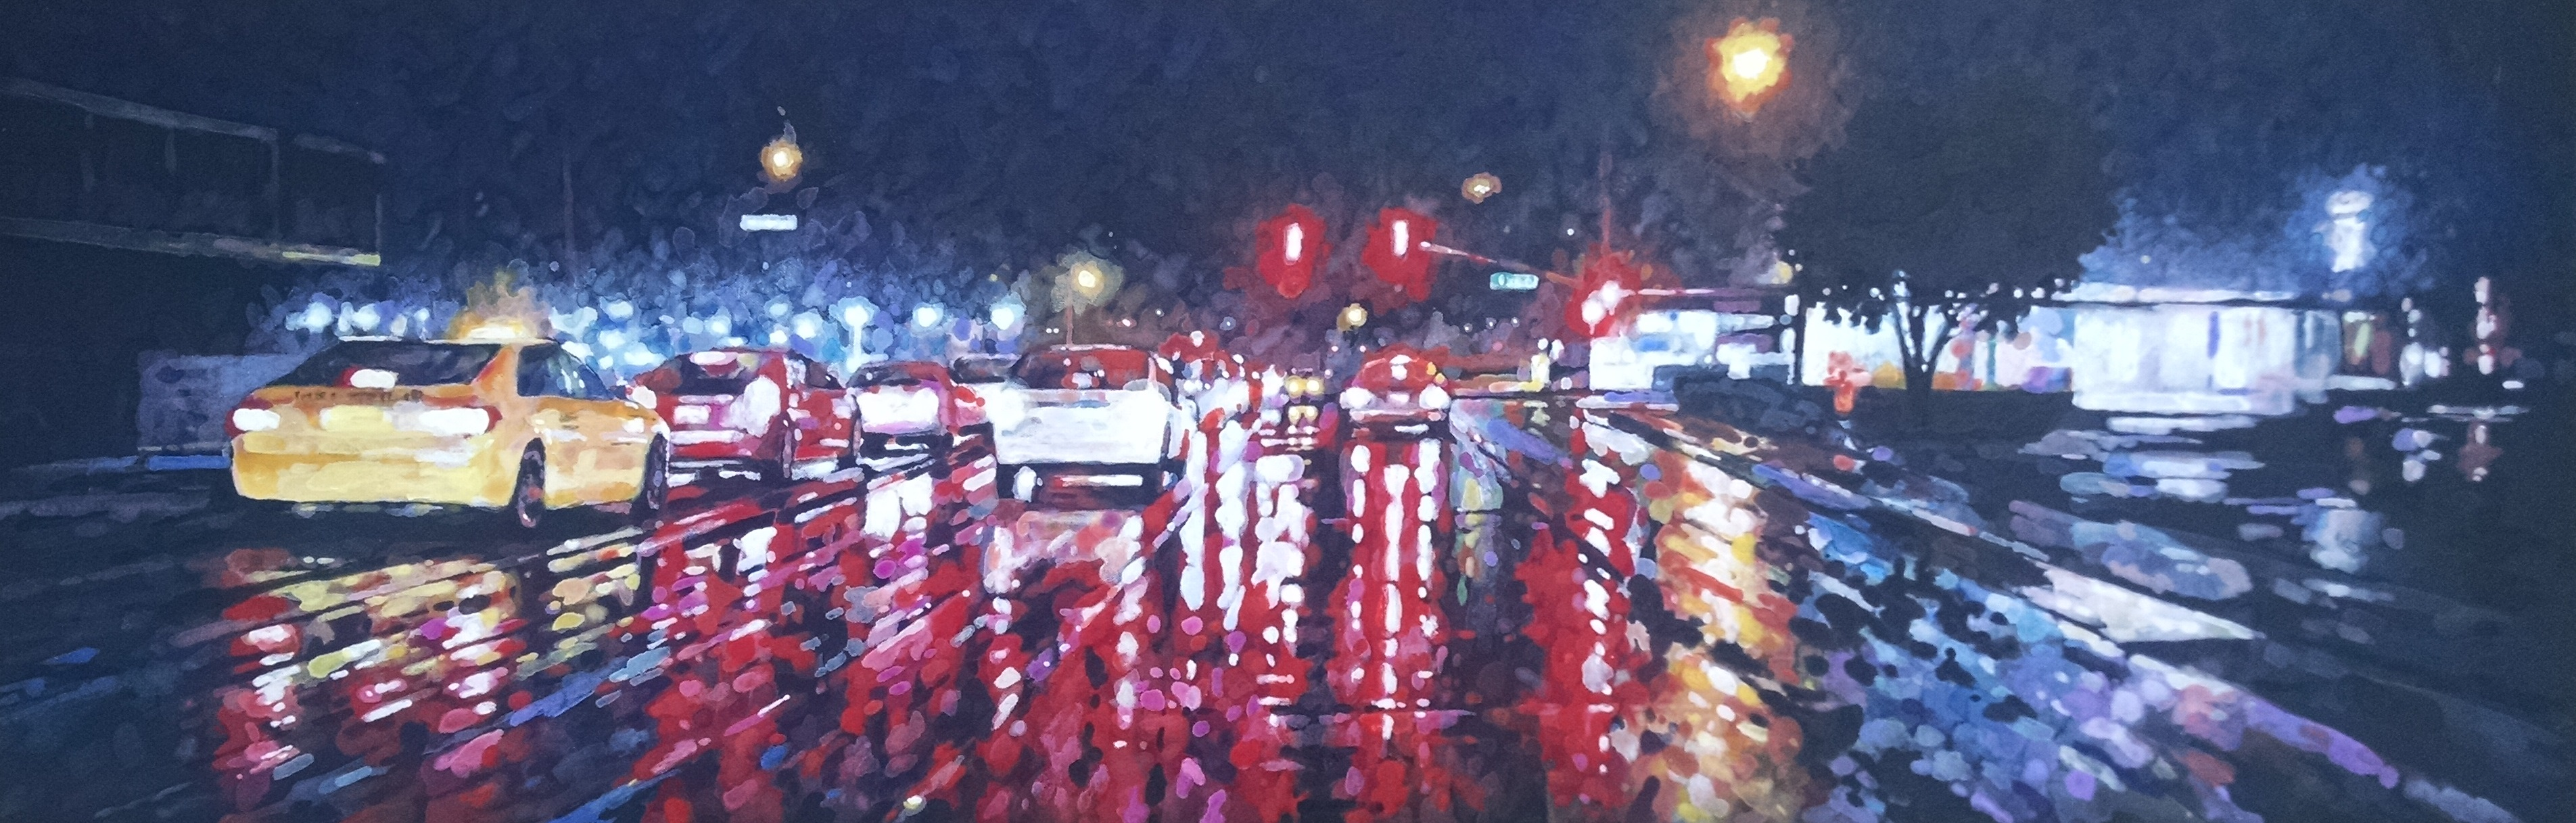 traffic on a wet night in Poway, CA